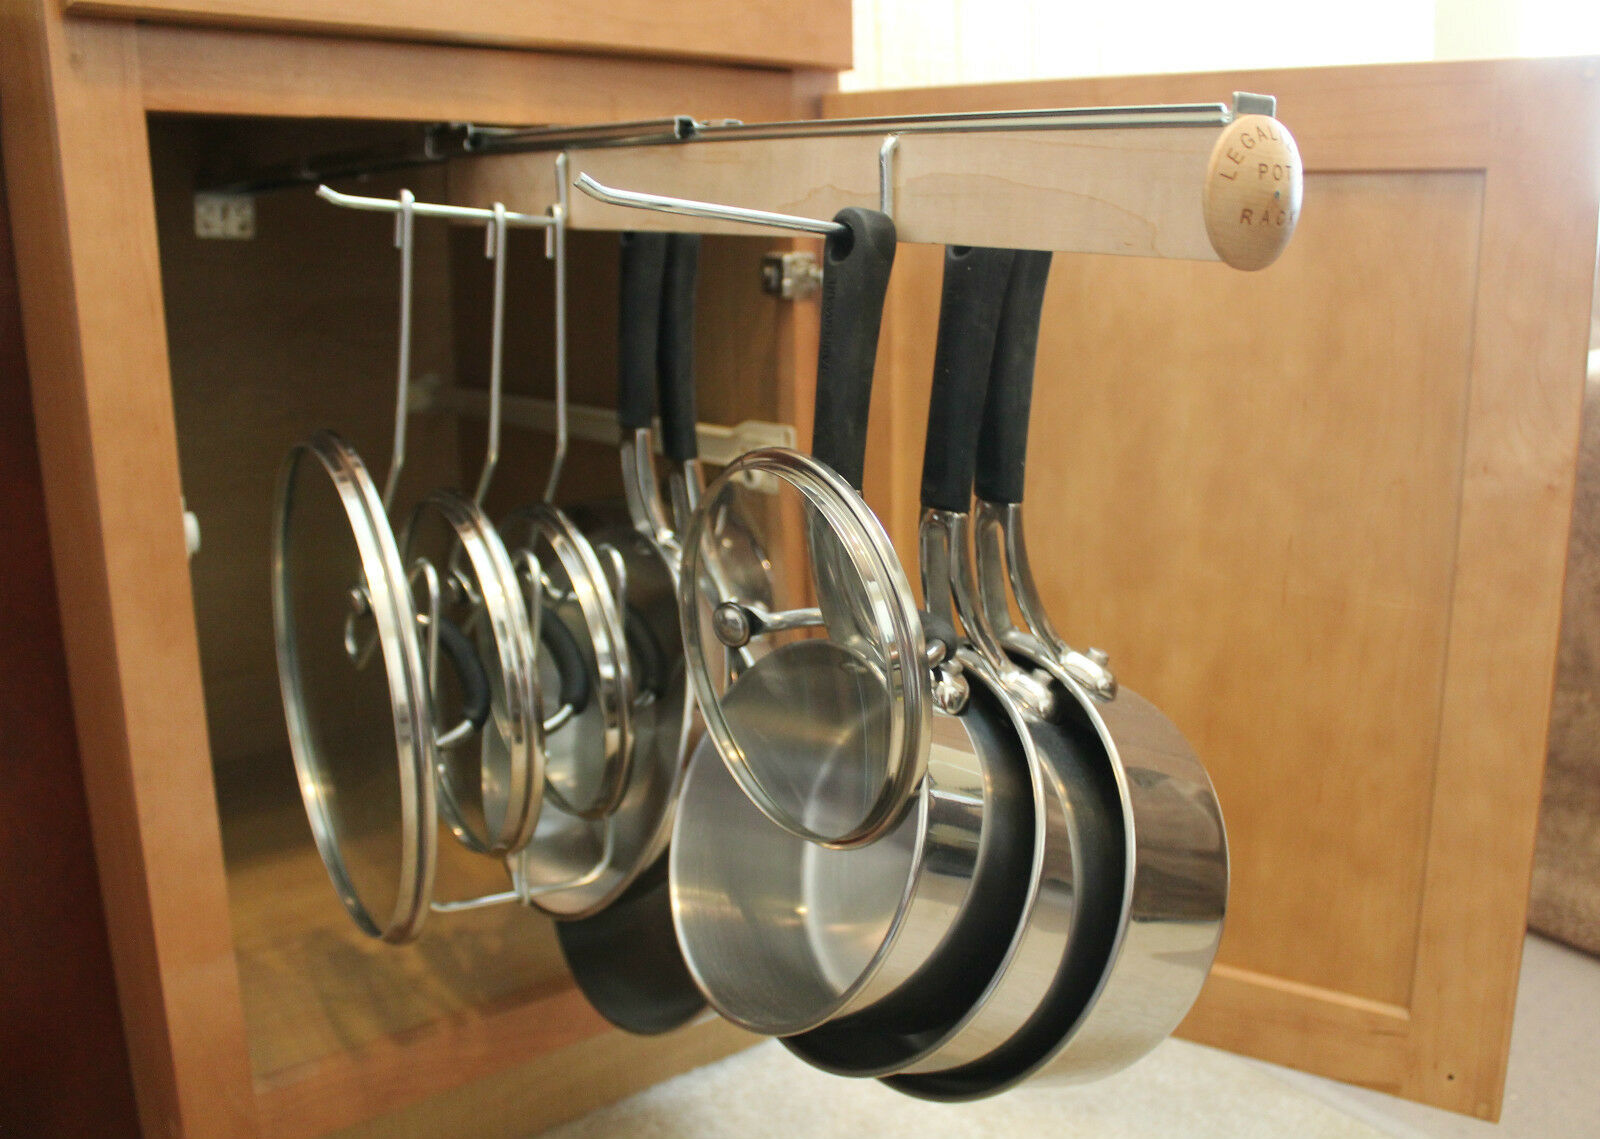 Legalized pot rack h d pull out hanging pot and pan lid rack cookware organizer - Cabinet pull out pot rack ...